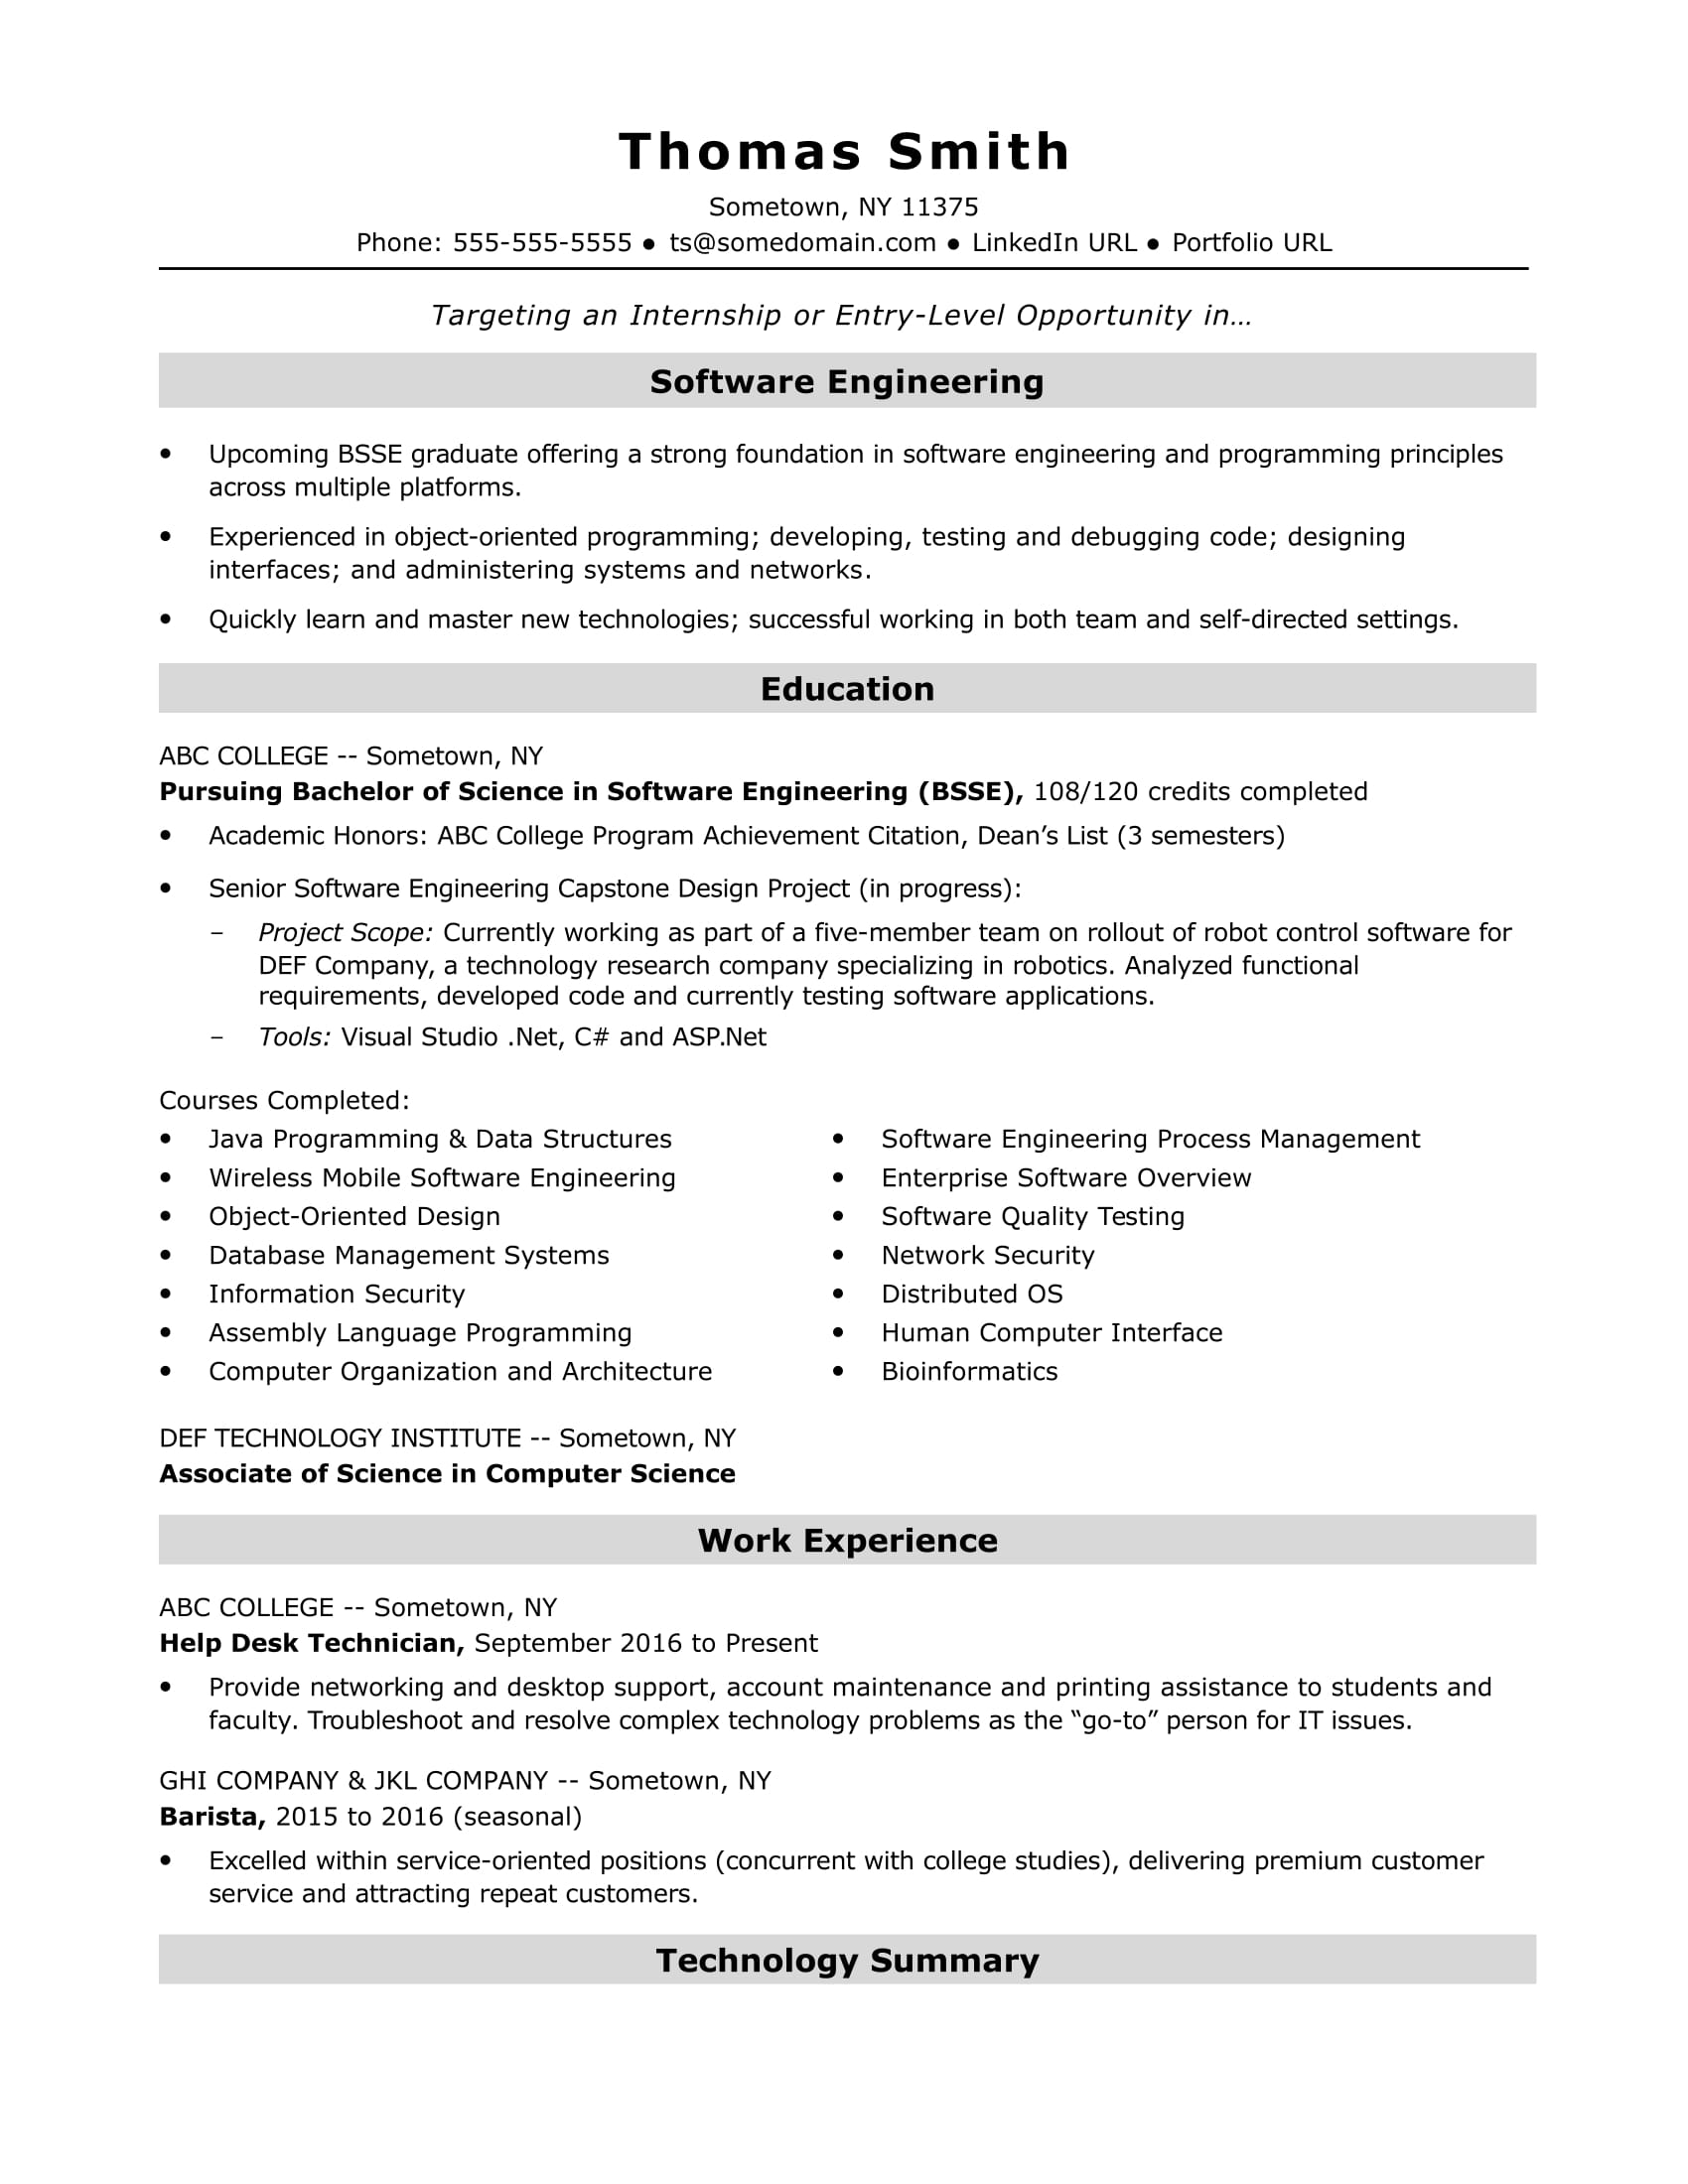 sample resume for an entry level software engineer - Sample Resume Entry Level Software Engineer